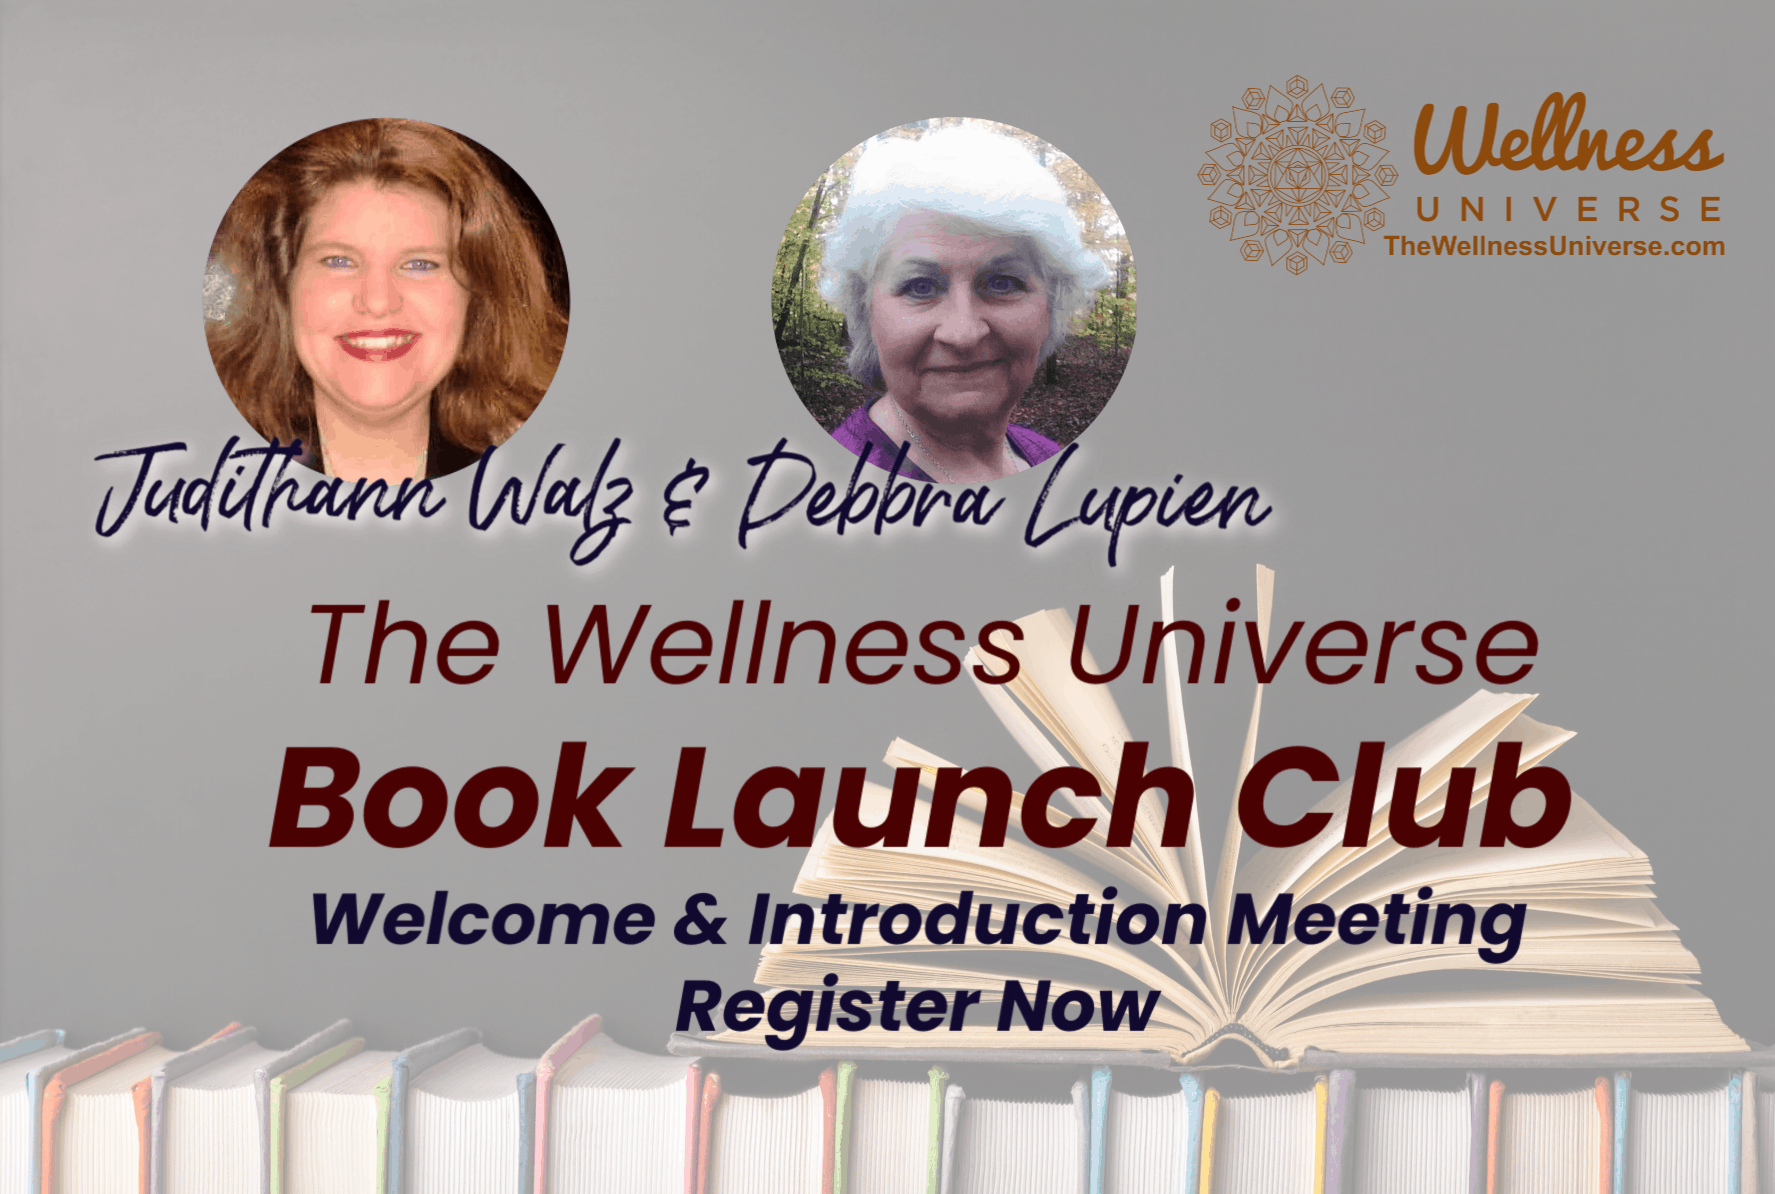 Join us for the Wellness Universe Book Launch Club welcome and introduction! 📚 http://bit.ly